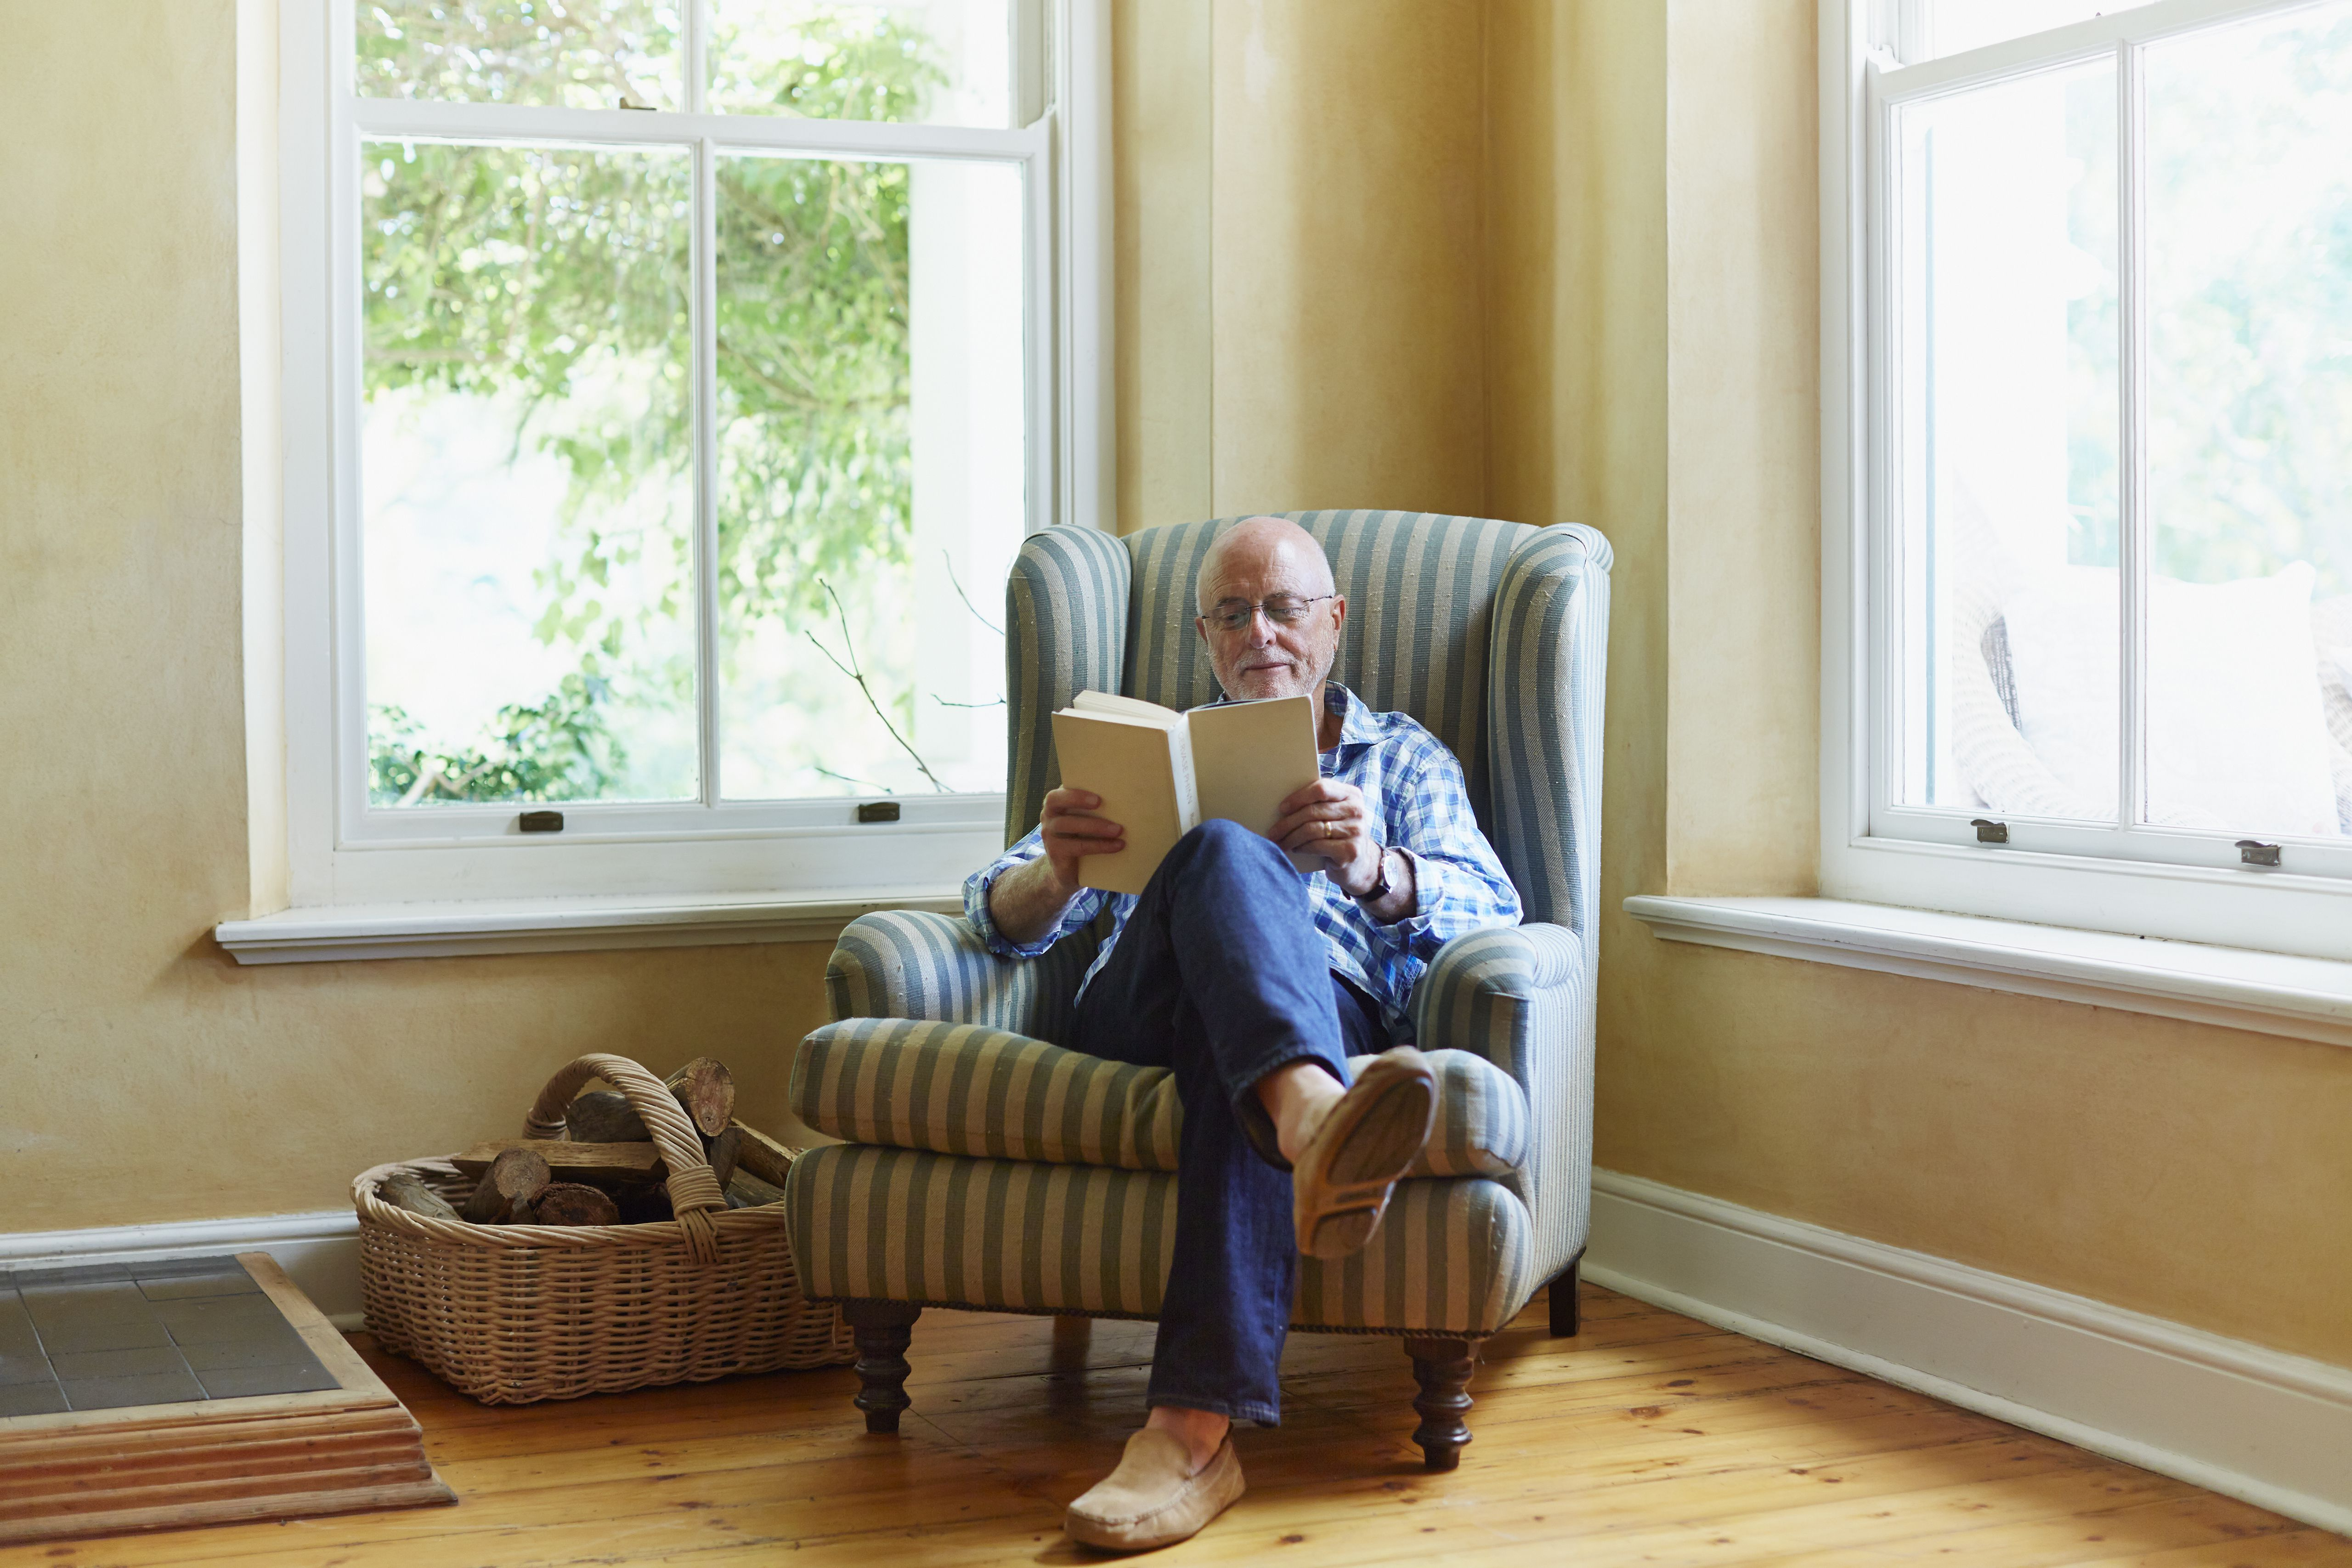 senior man reading book at home 6c8f8395d2d74dddaed c6e77f5